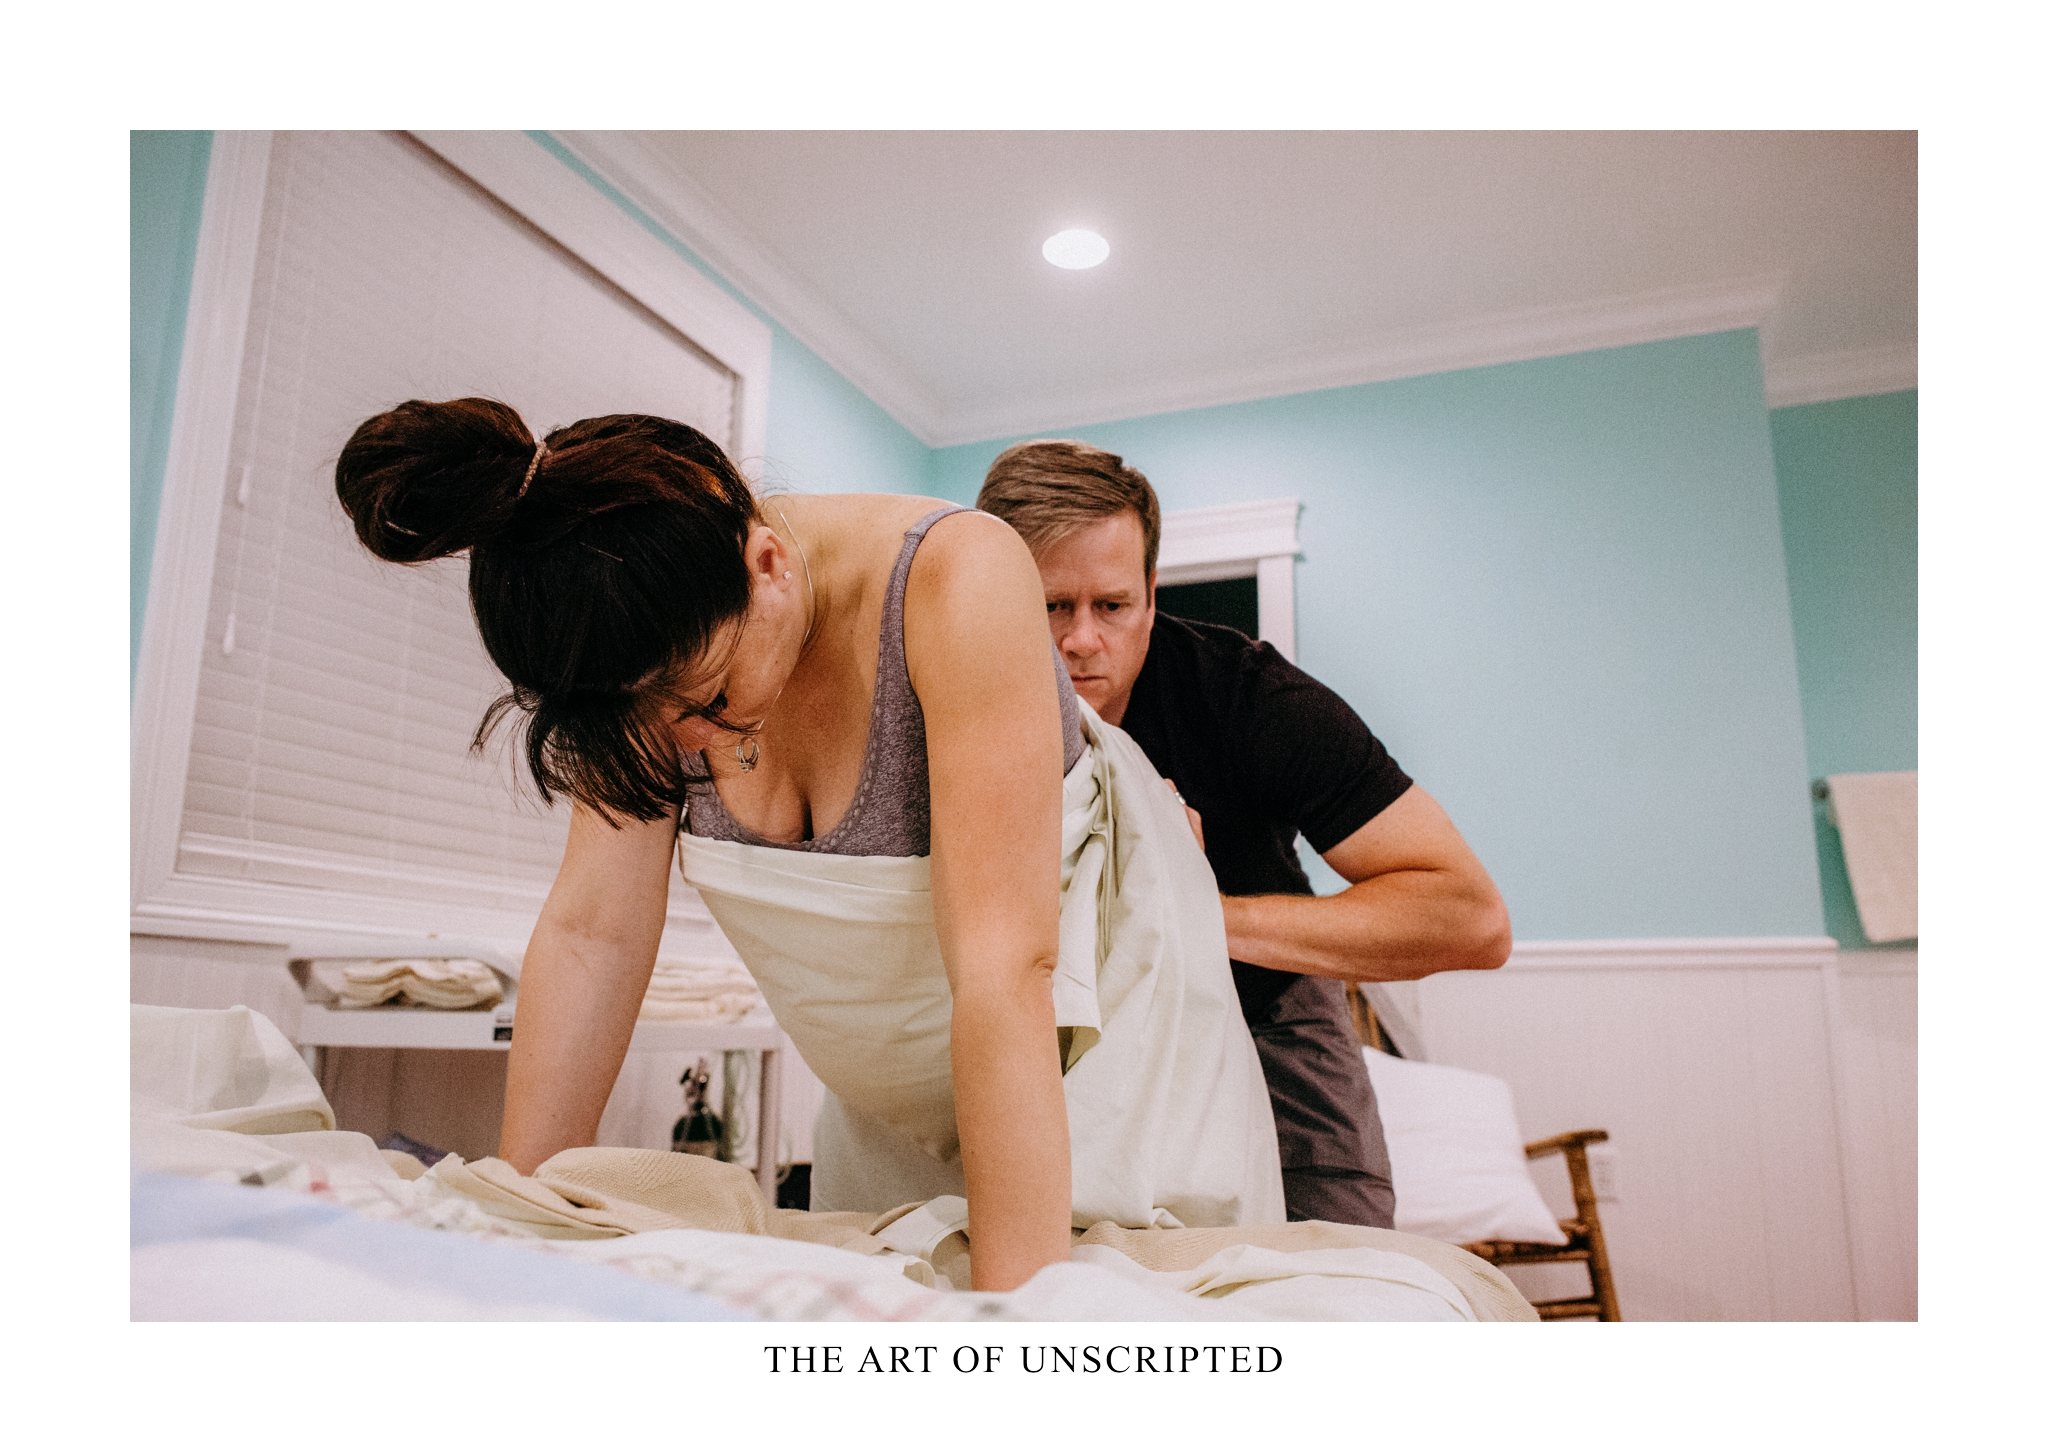 2017-06-10_212110__THE ART OF UNSCRIPTED_SPRINGFIELD MO_BIRTH PHOTOGRAPHER_ DOCUMENTARY_STORYTELLING_417_PHOTOGRAPHER